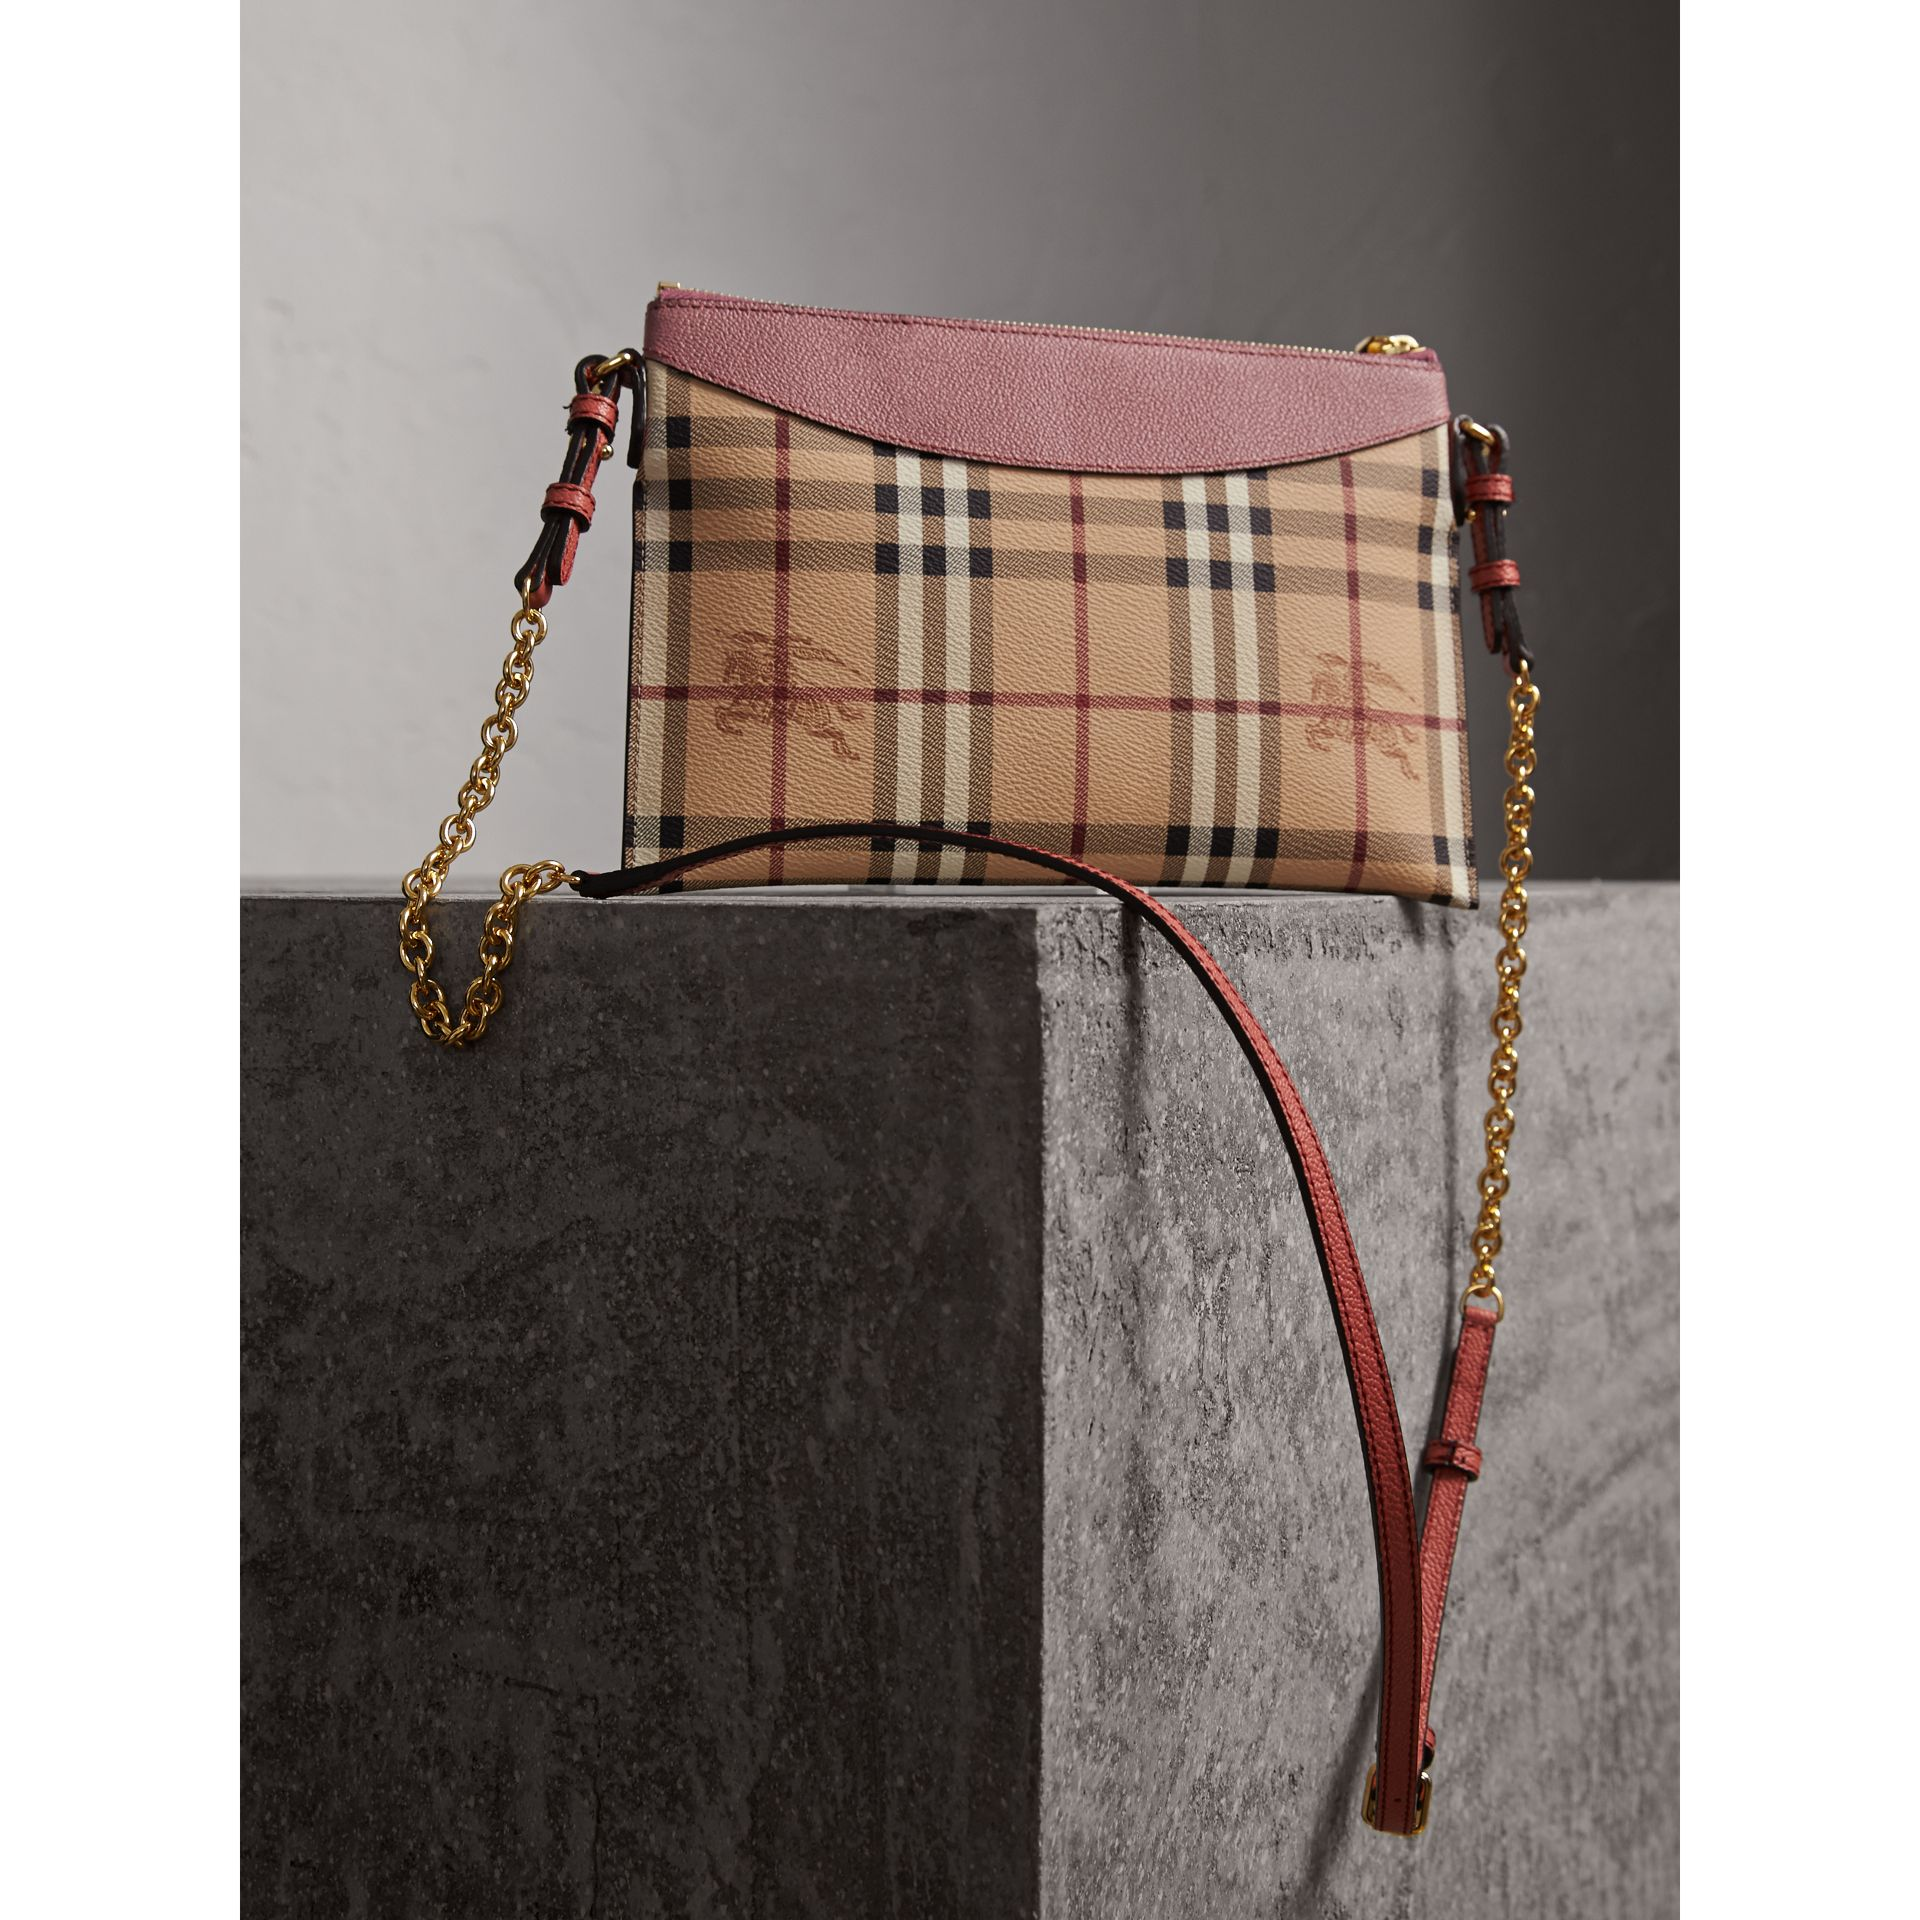 Haymarket Check and Two-tone Leather Clutch Bag in Dusty Pink/multicolour - Women | Burberry - gallery image 5